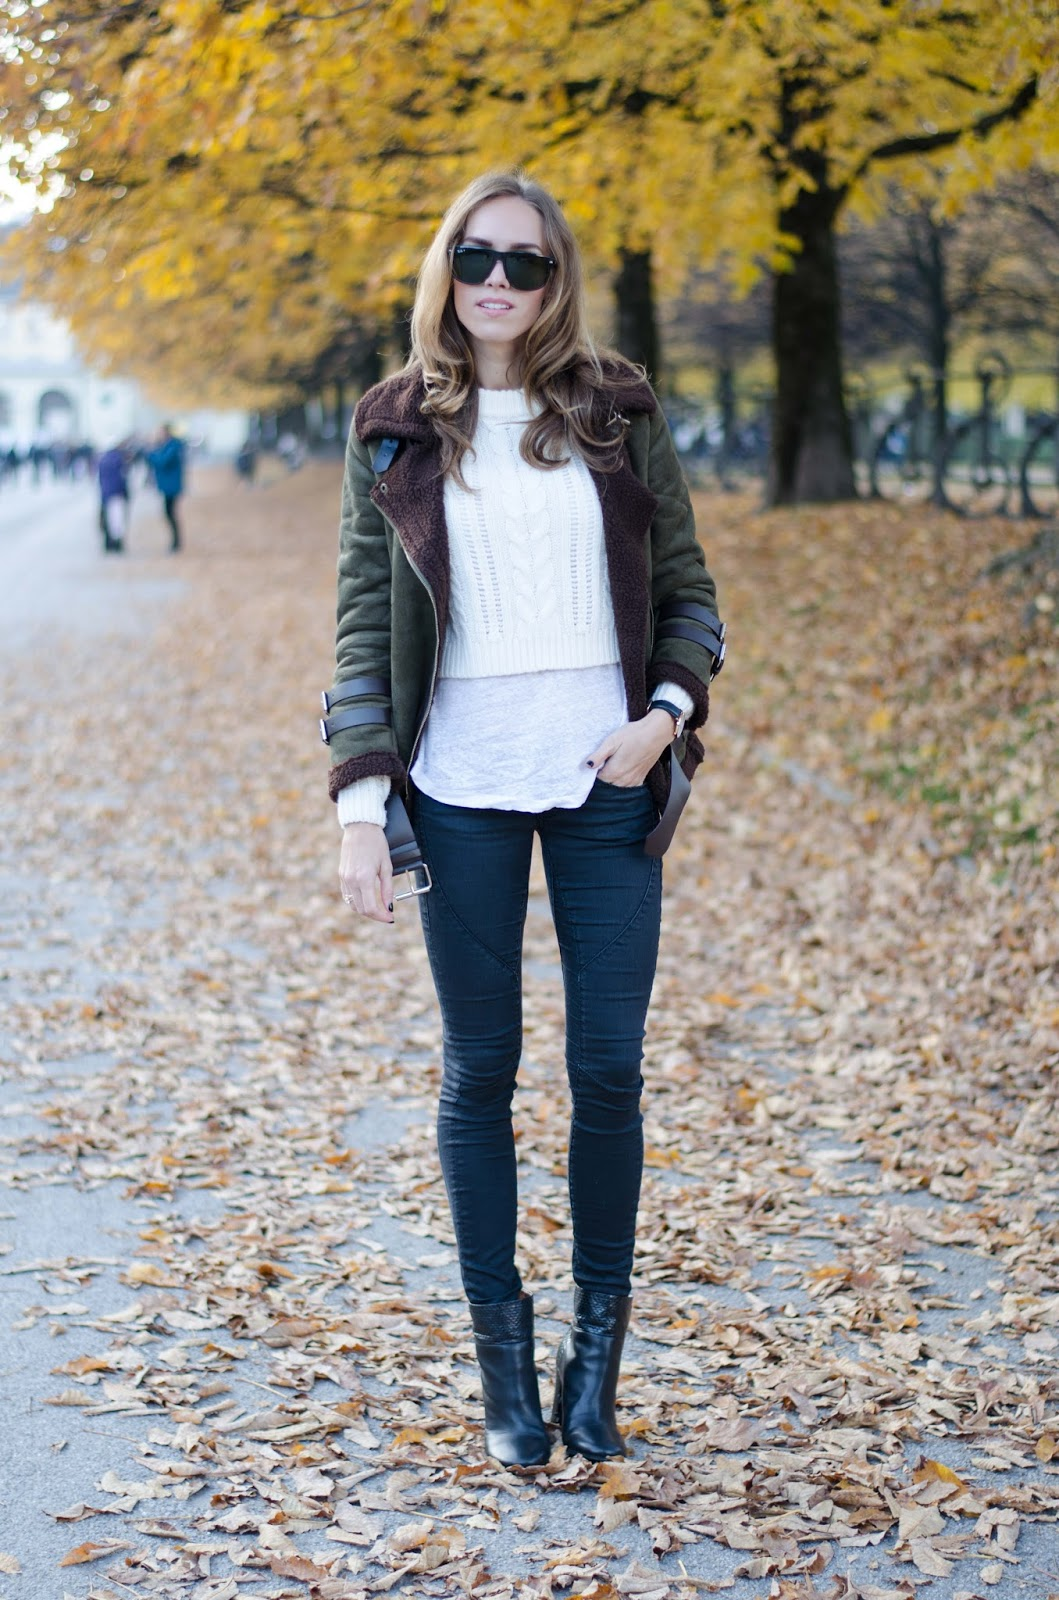 kristjaana mere shearling jacket fall outfit fashion inspiration